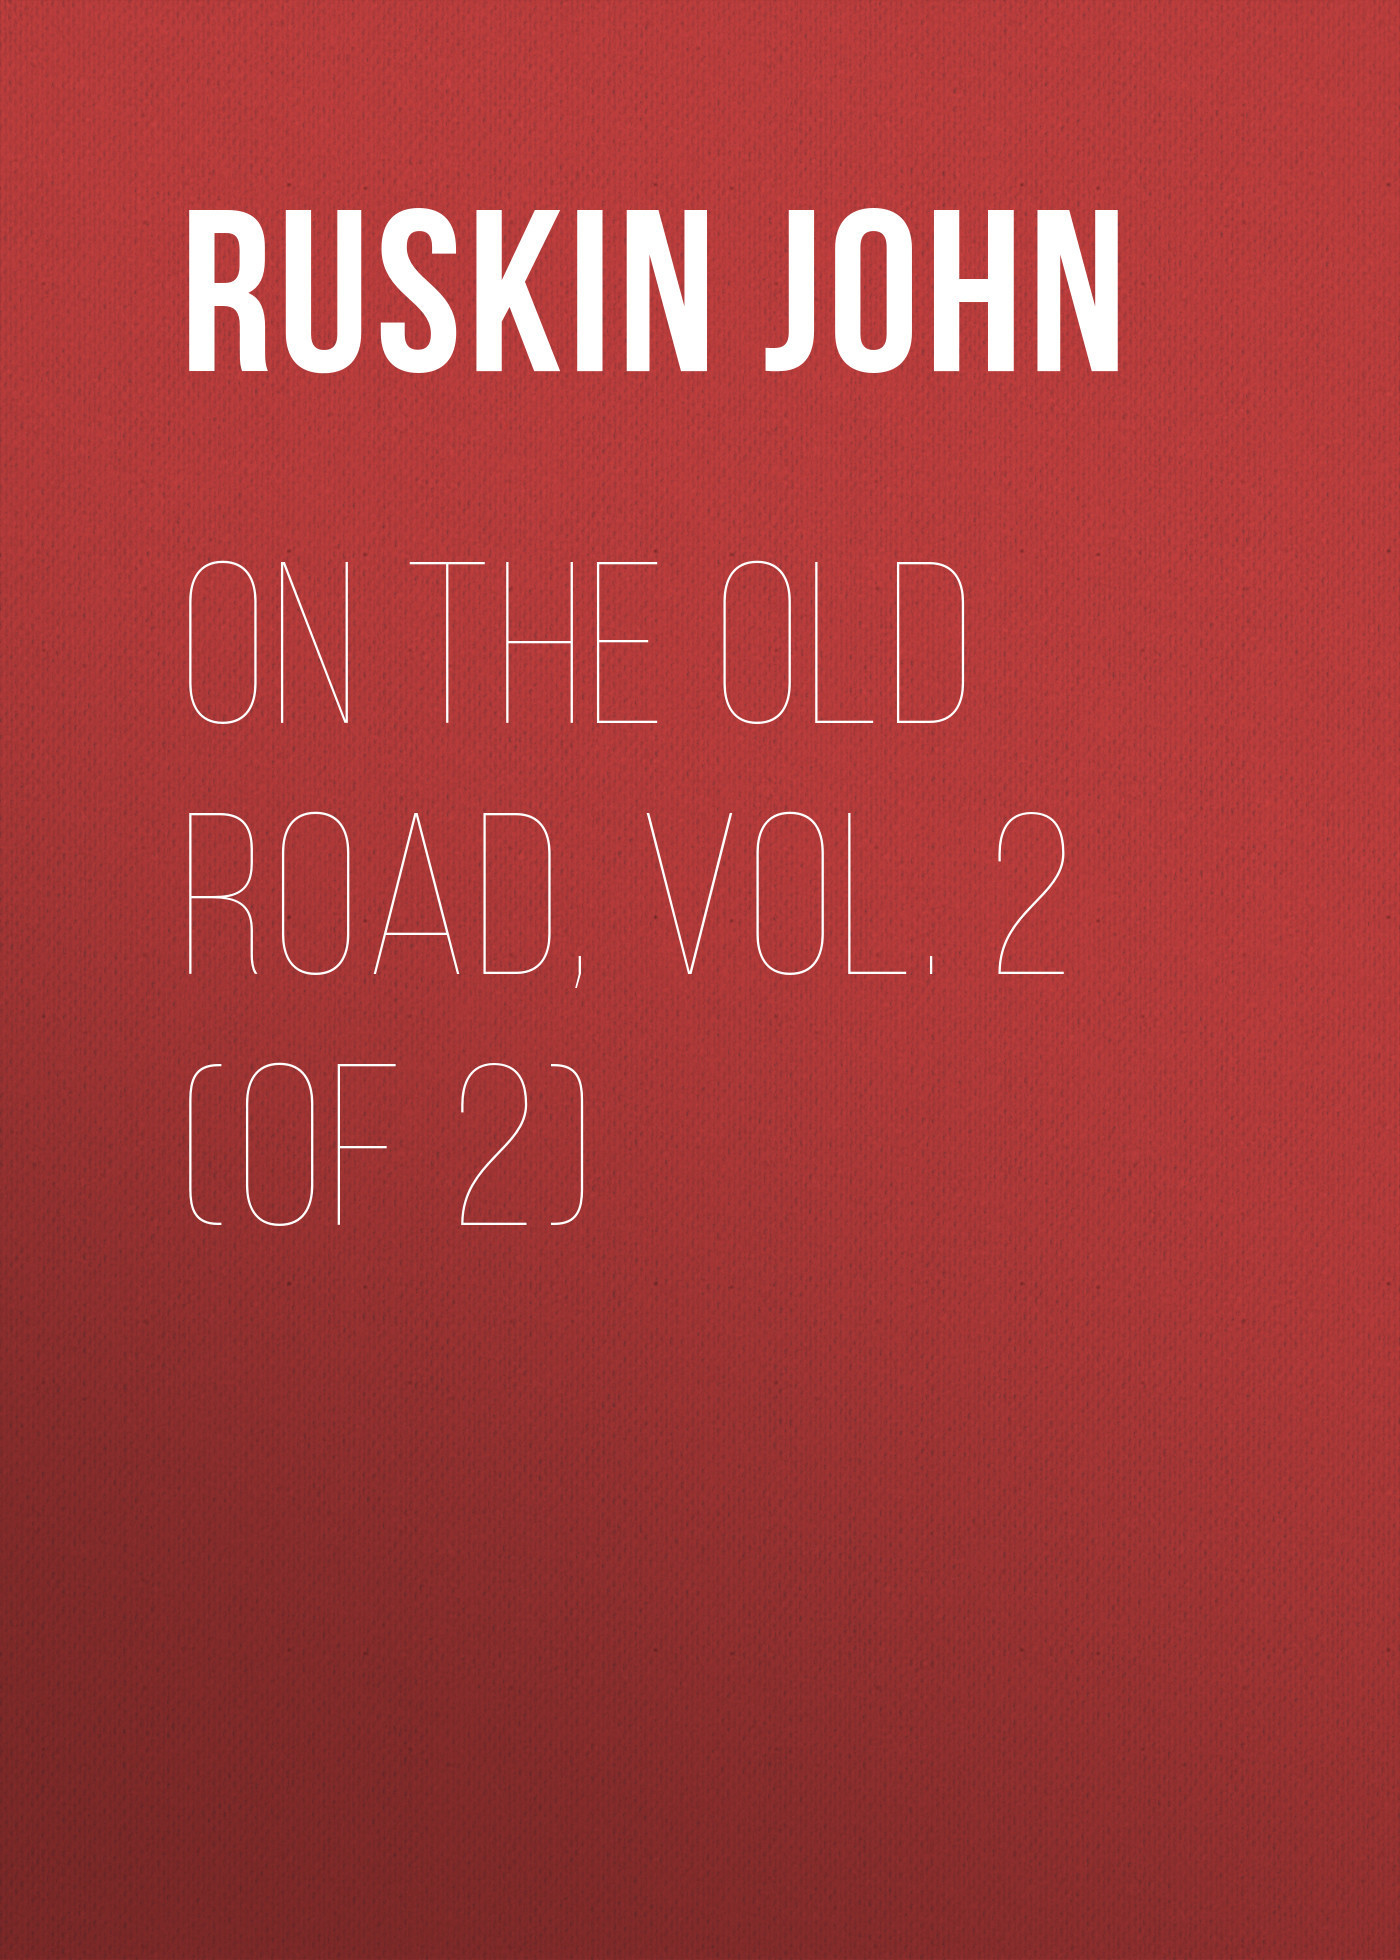 Ruskin John On the Old Road, Vol. 2 (of 2) насос fladen